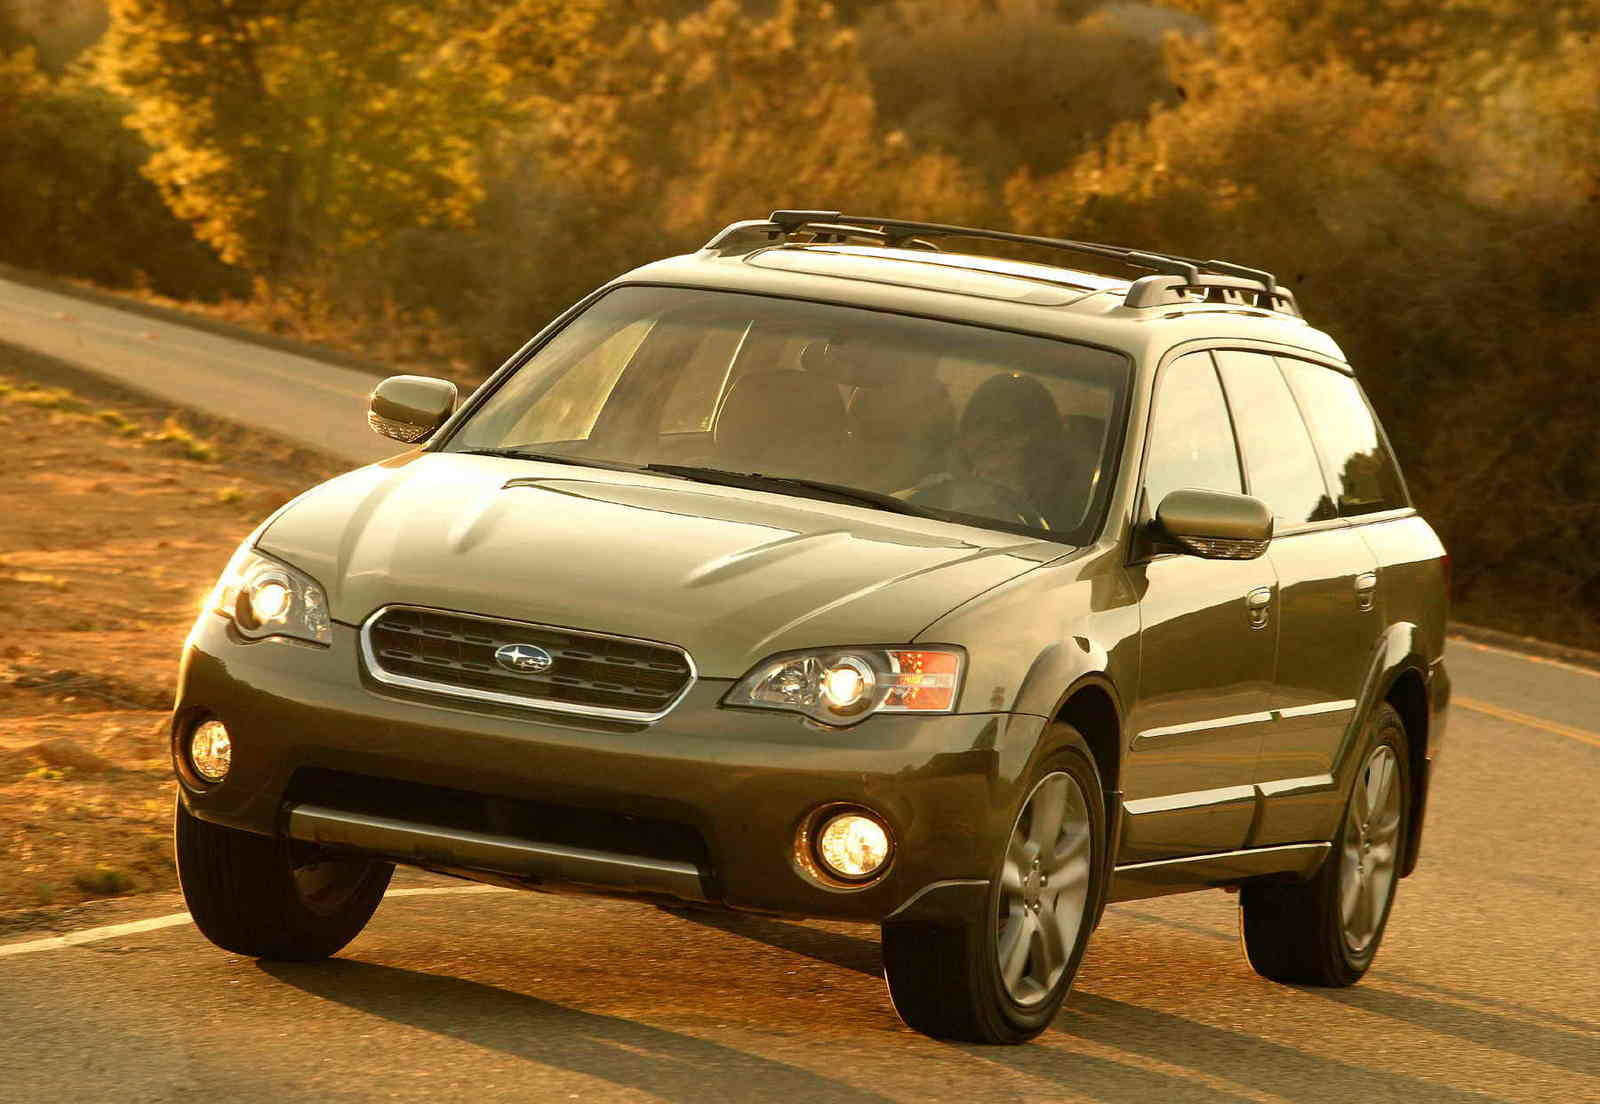 2006 subaru outback picture 44223 car review top speed. Black Bedroom Furniture Sets. Home Design Ideas